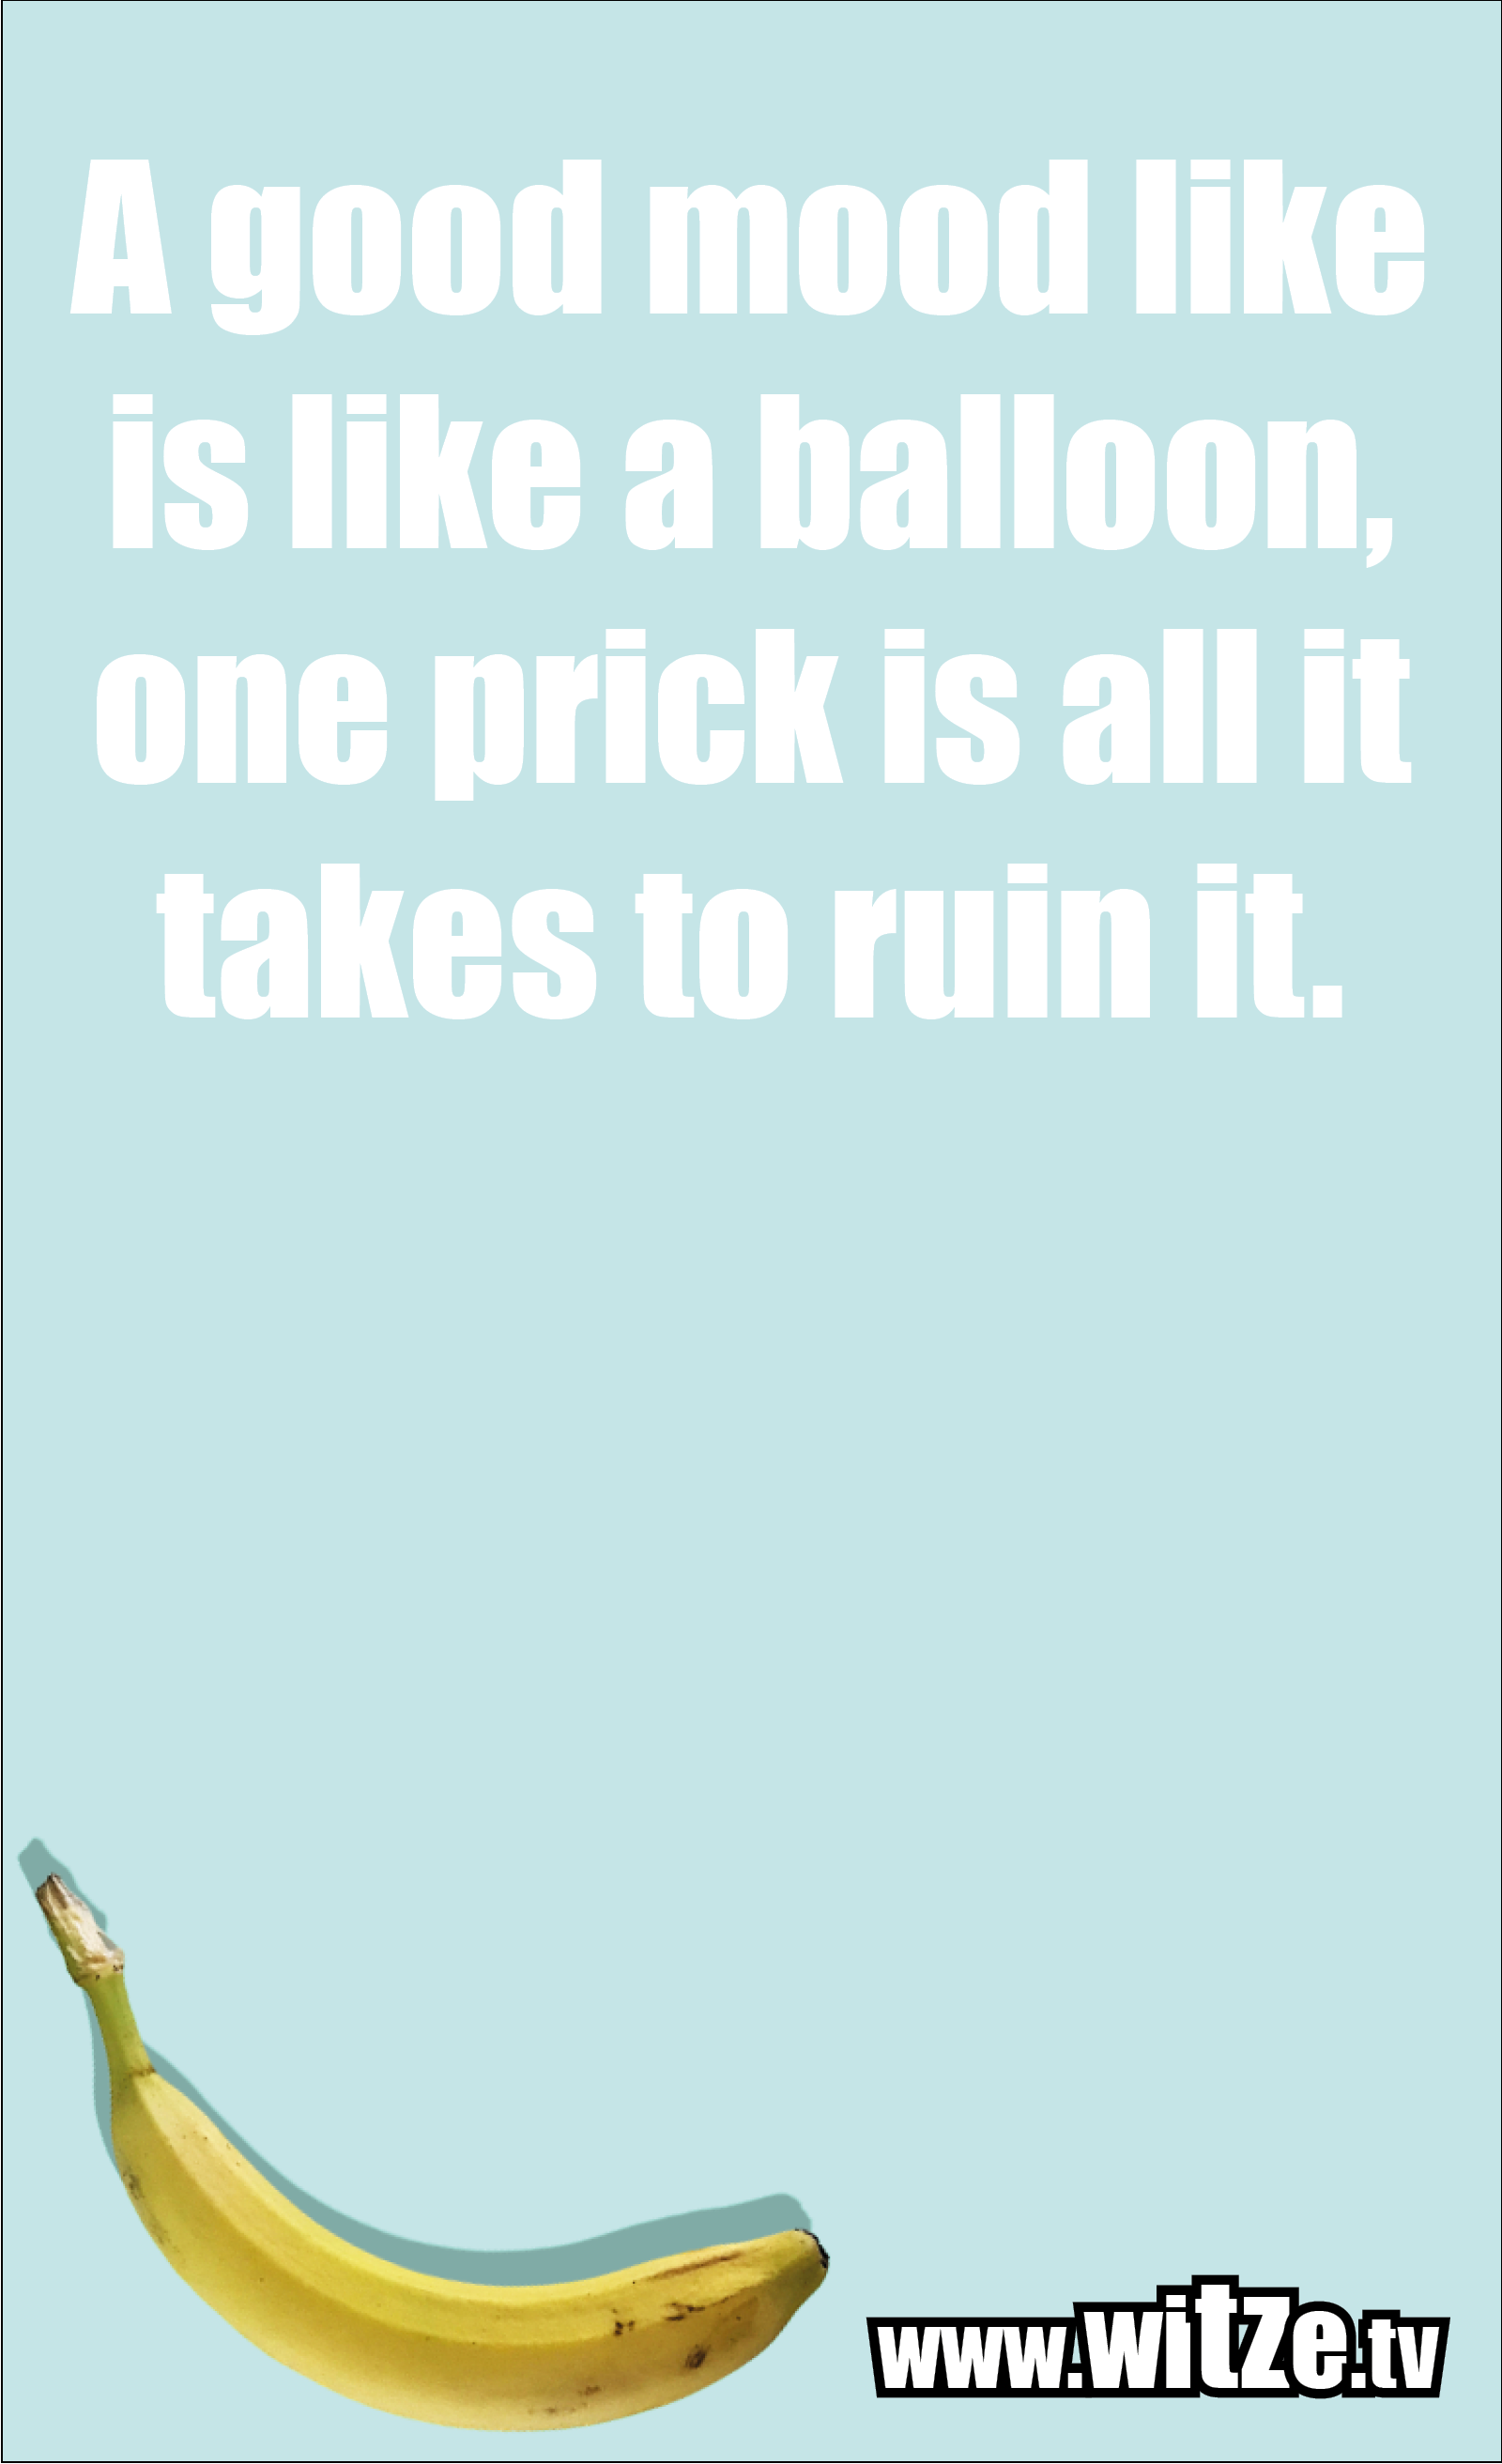 Funny sayings… A good mood like is like a balloon, one prick is all it takes to ruin it.